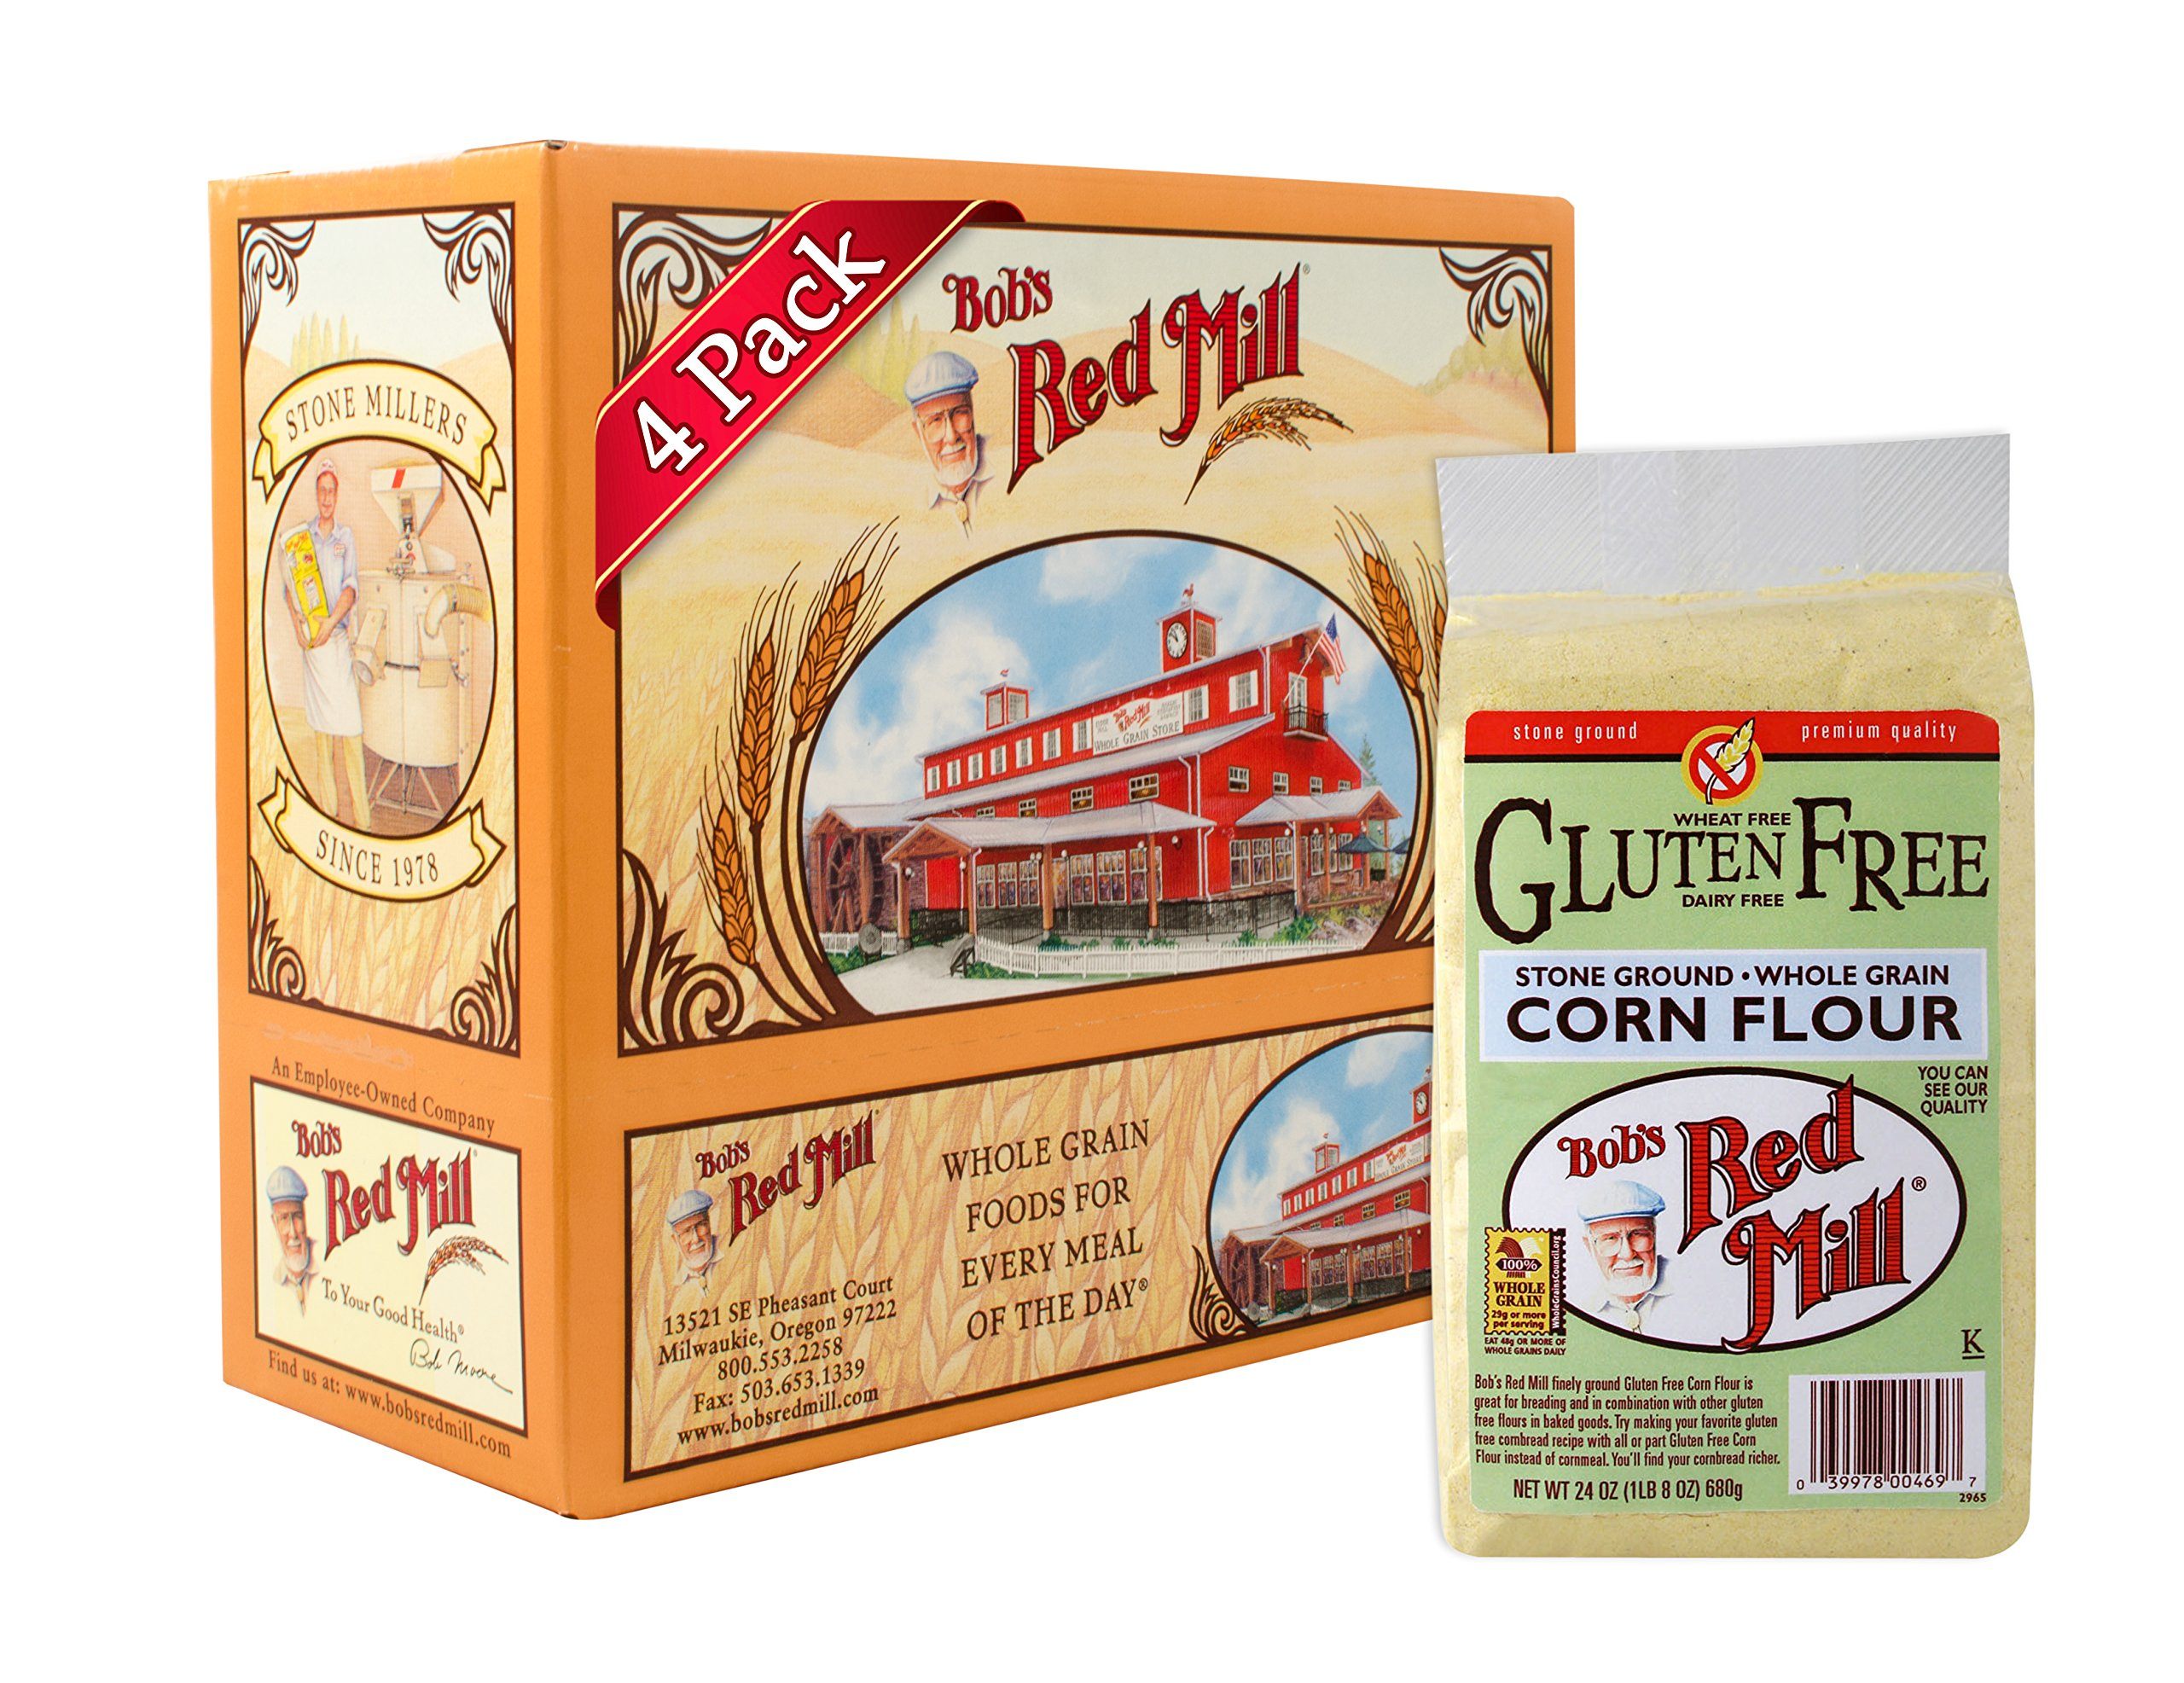 Bob's Red Mill Gluten Free Corn Flour, 24-ounce (Pack of 4) by Bob's Red Mill